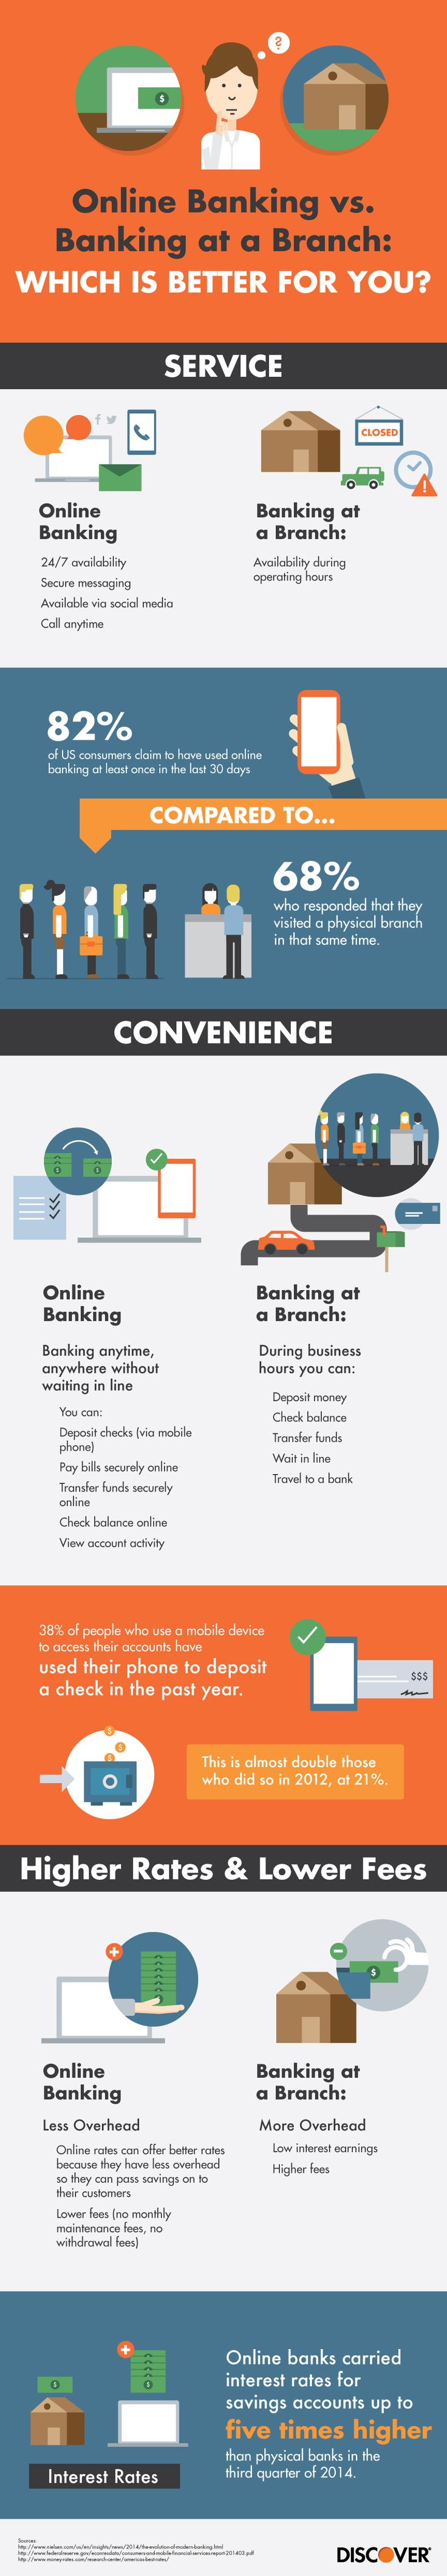 Online Banking vs. Banking at a Branch: Which is Better for You? #infographic #banking #Finance